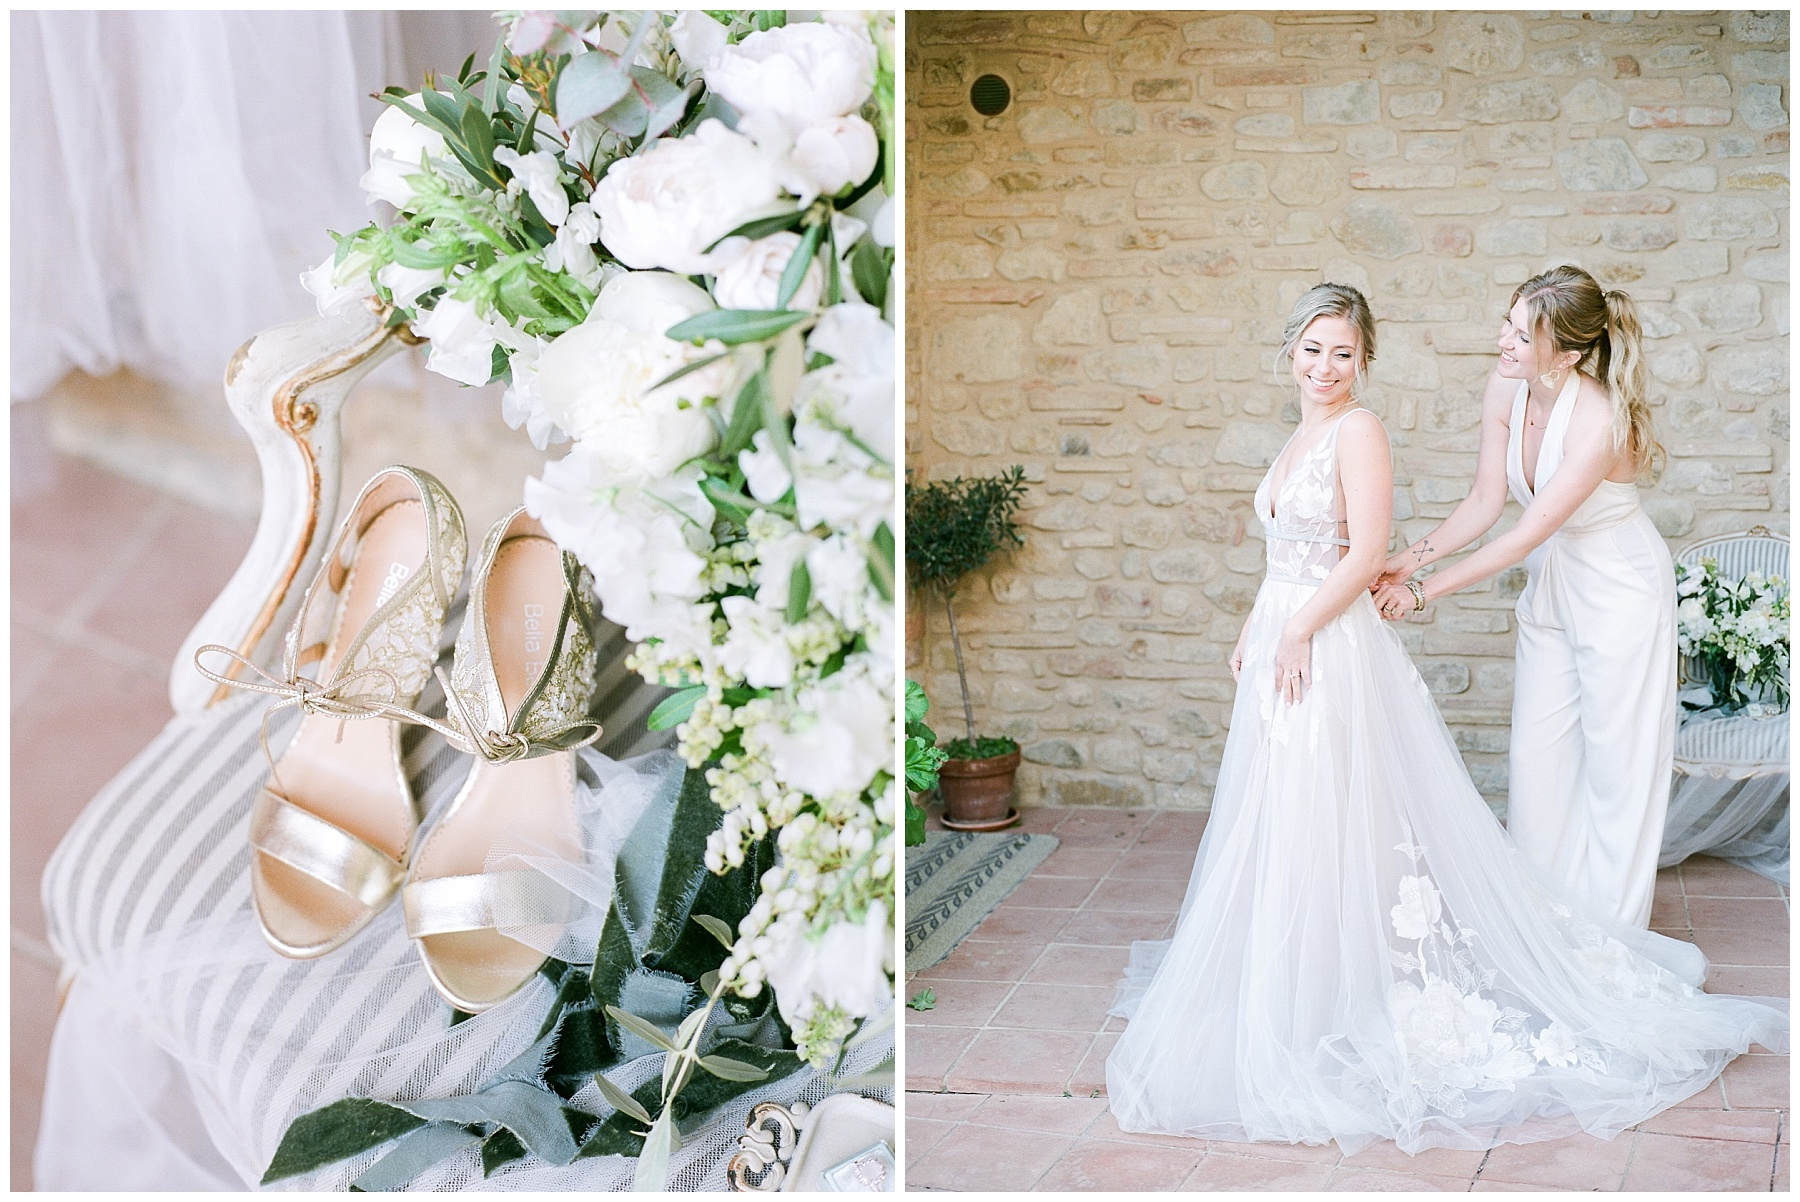 All White Destination Wedding in the Hills of Tuscany Italy at Estate Borgo Petrognano by Kelsi Kliethermes Photography_0009.jpg